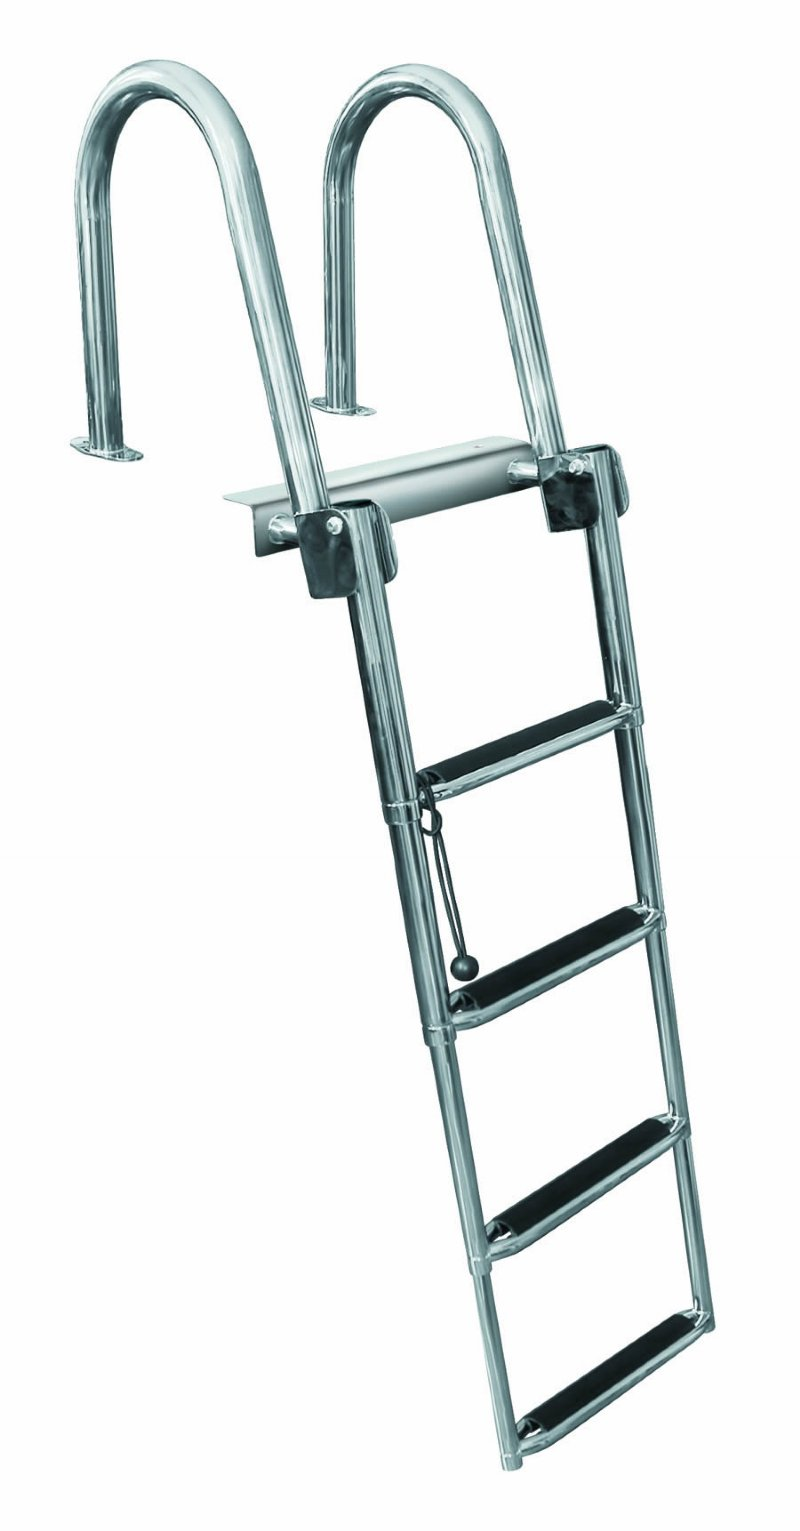 4 Step Rear Entry Stainless Steel Pontoon Ladders 4 Step